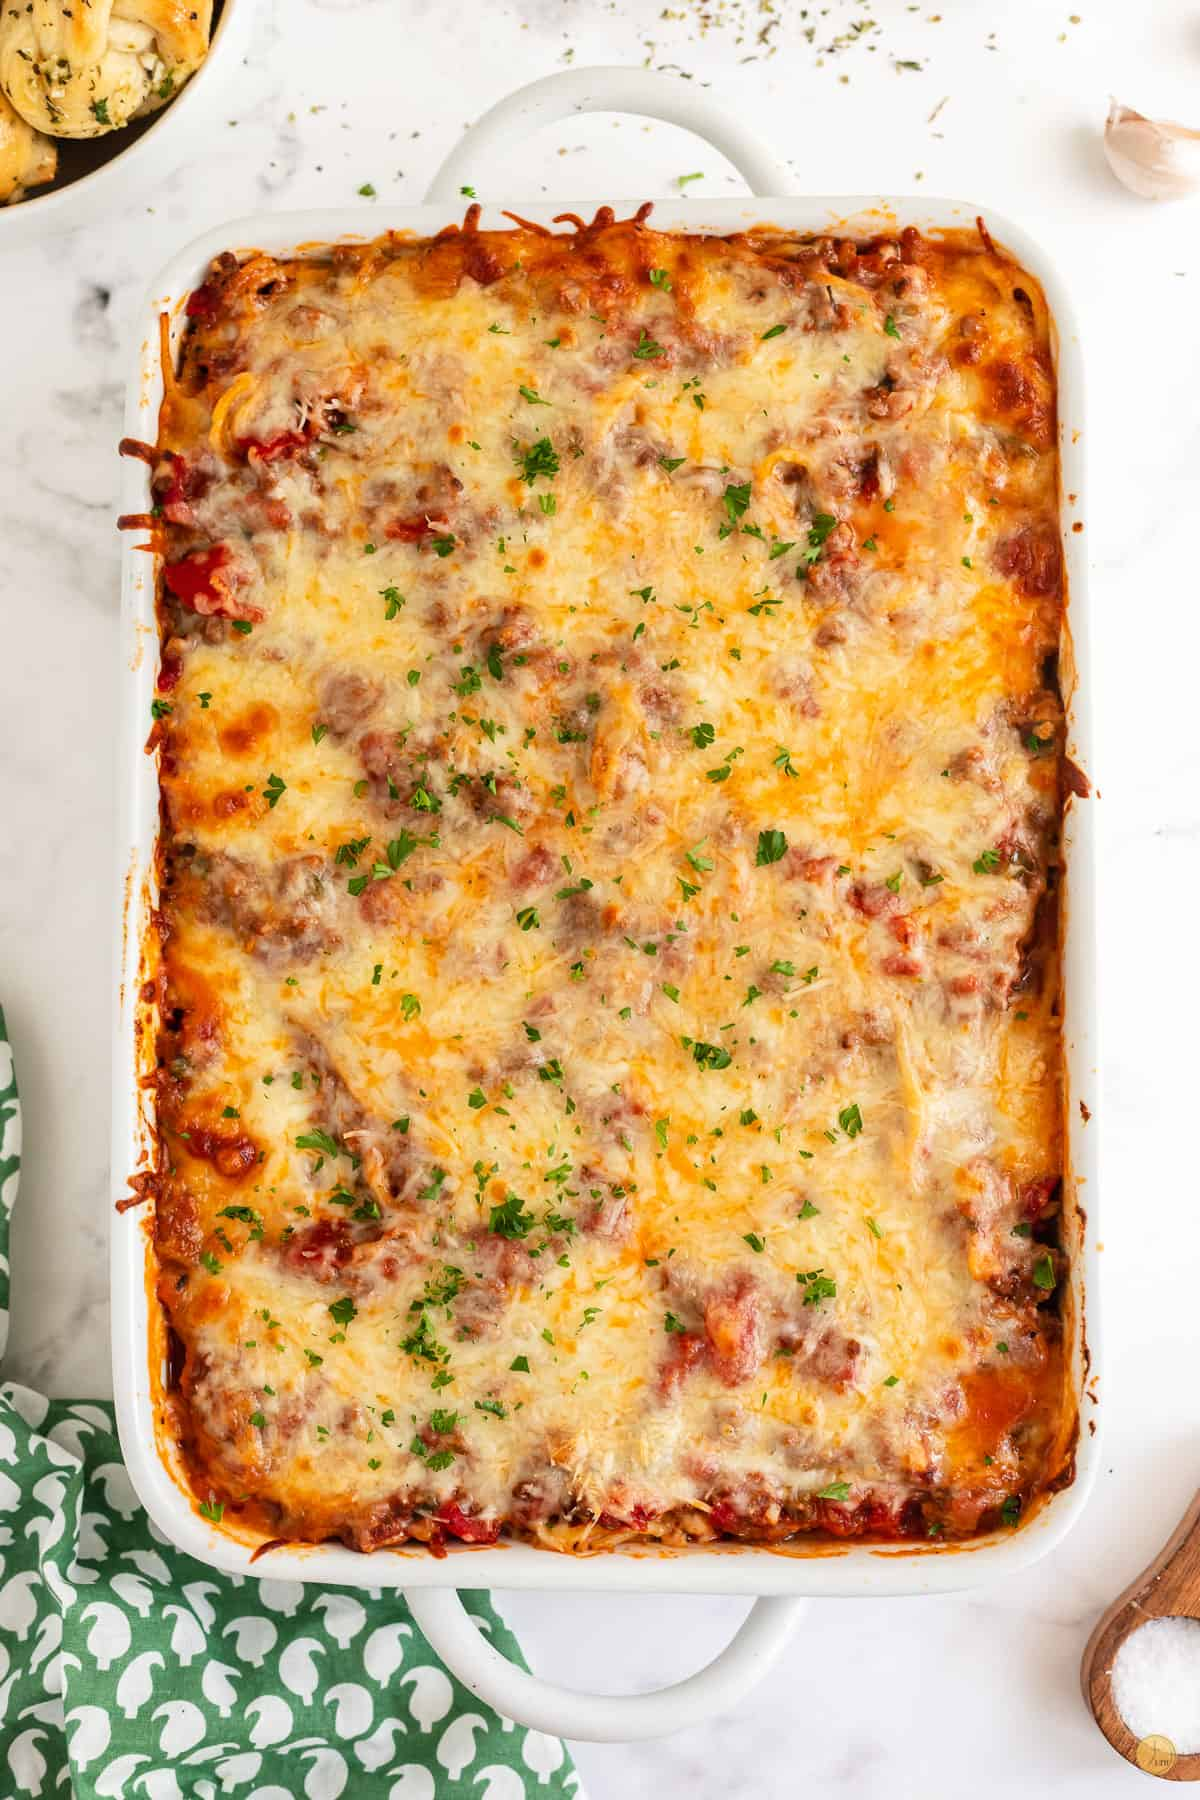 southern baked spaghetti in a casserole dish